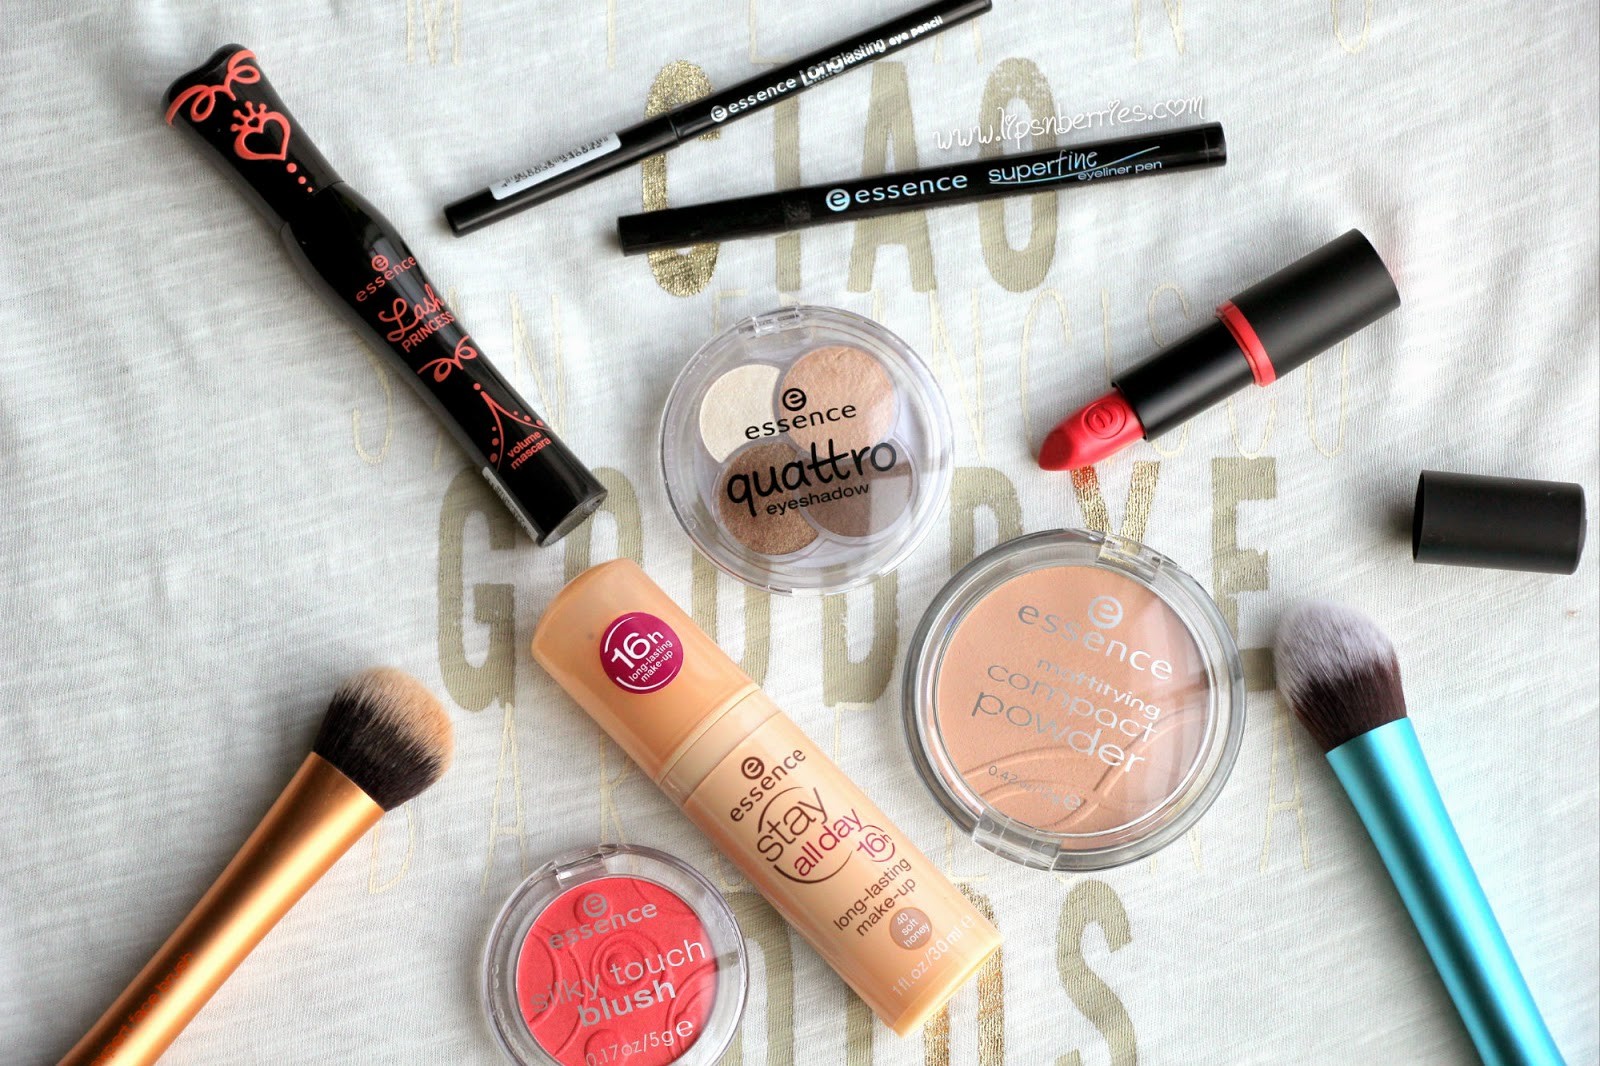 Best Essence products